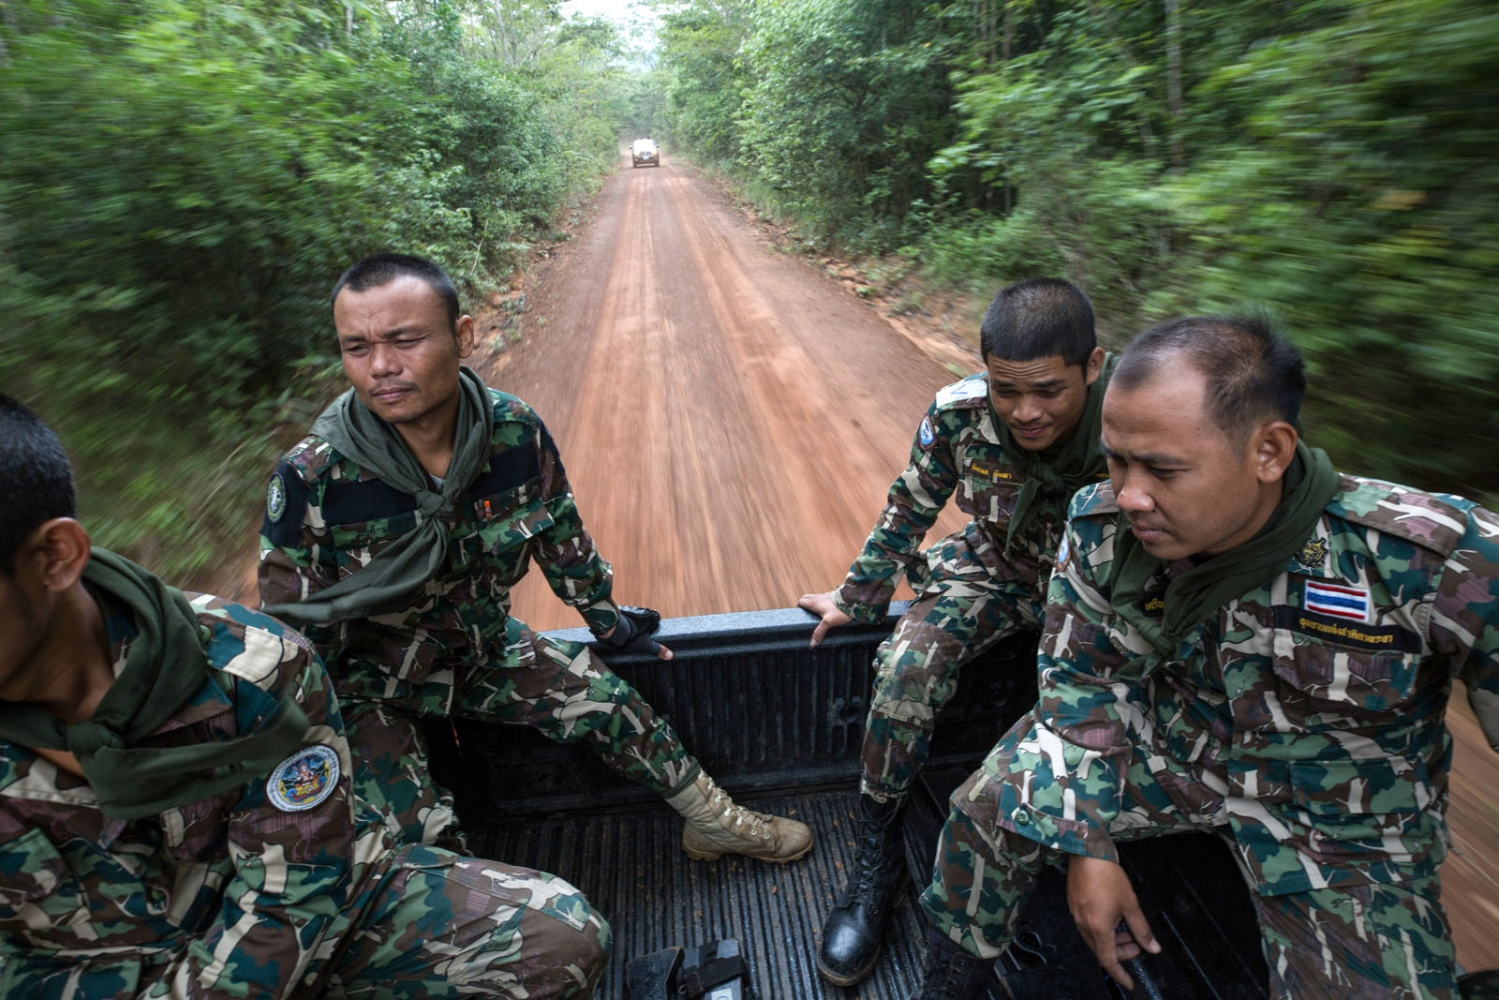 Thai forest rangers leave their ranger station to be dropped off at the edge of the national park for a 3-day patrol. This part of Thailand sees a lot of movement of illegal loggers entering Thailand from Cambodia and moving across to find the remaining rose wood trees. Ta Praya National Park, Sa Kaew Province - September 2018